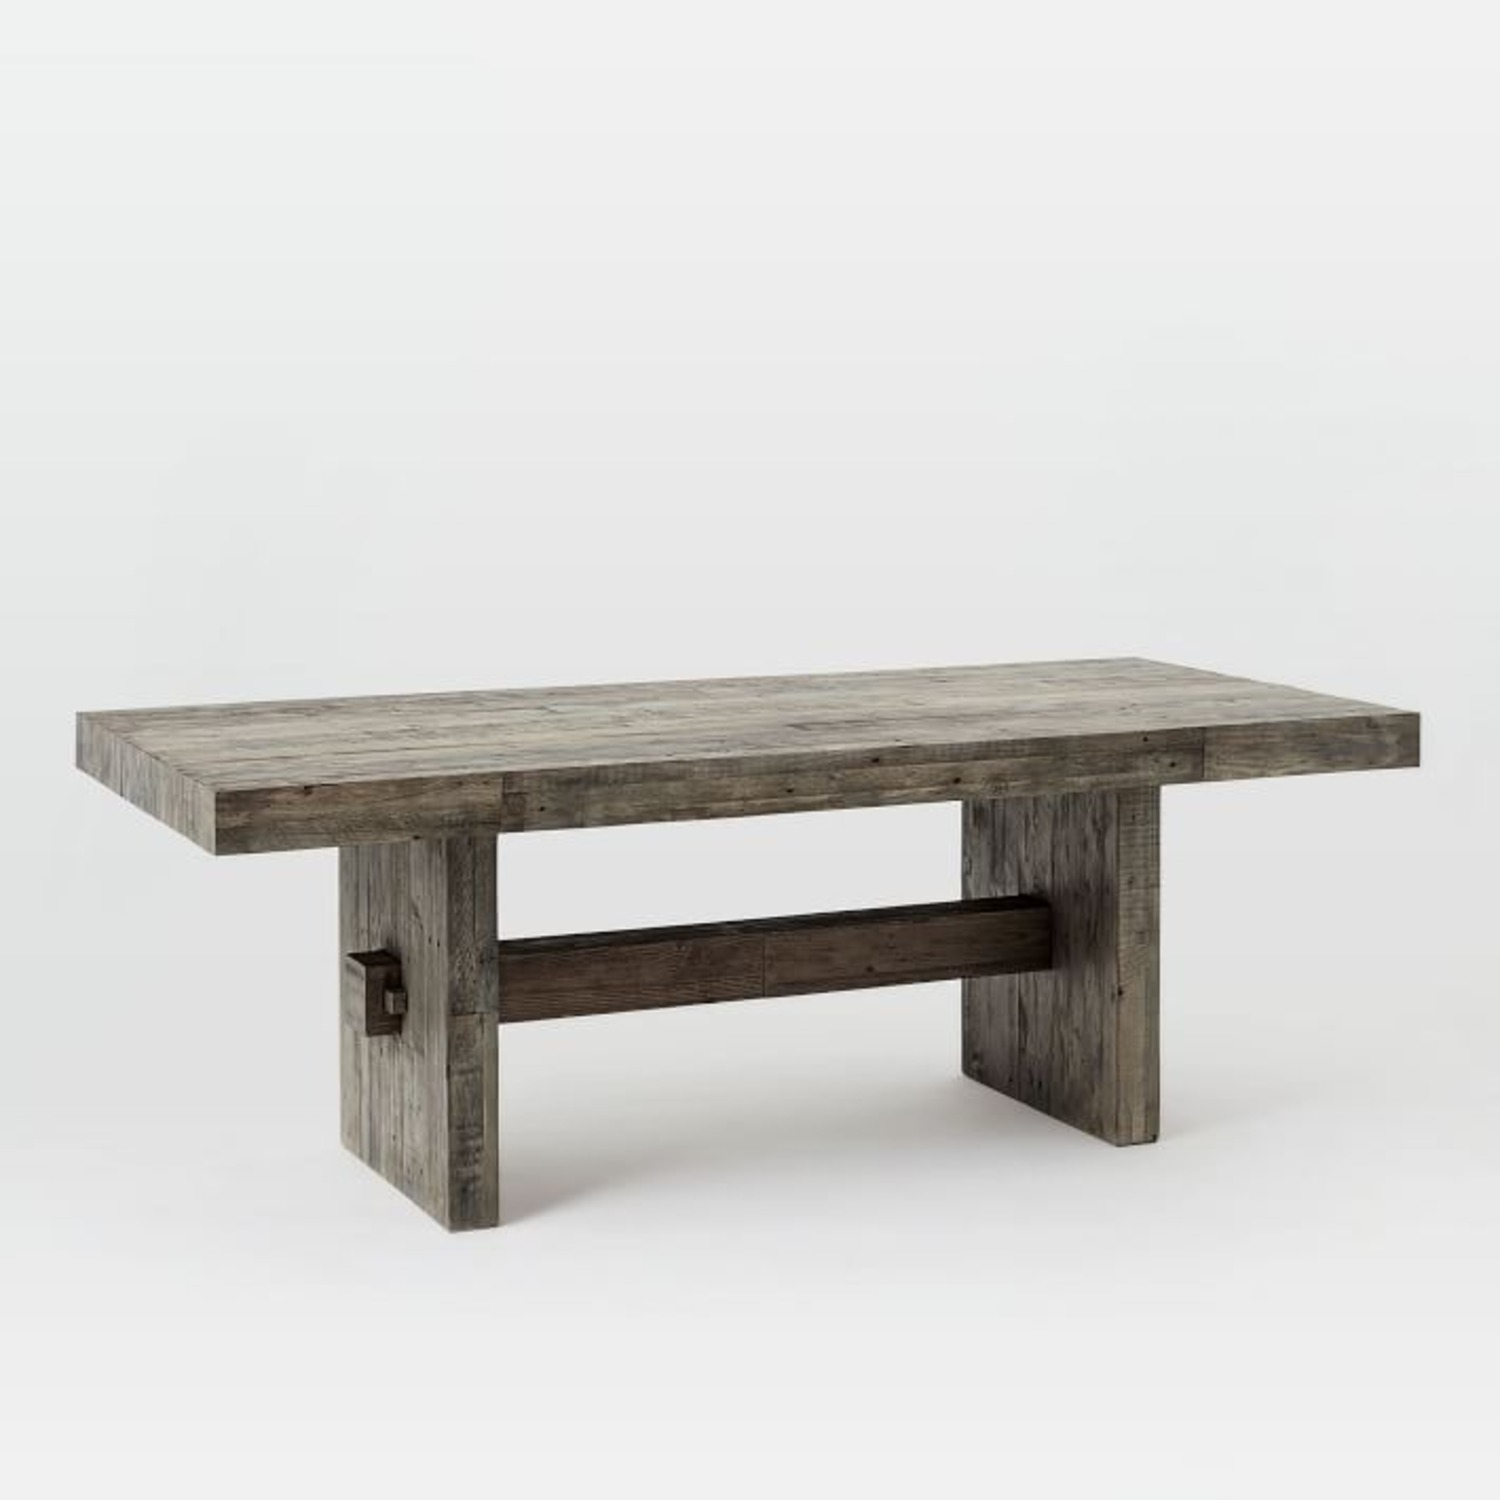 West Elm Emmerson Dining Table - image-1